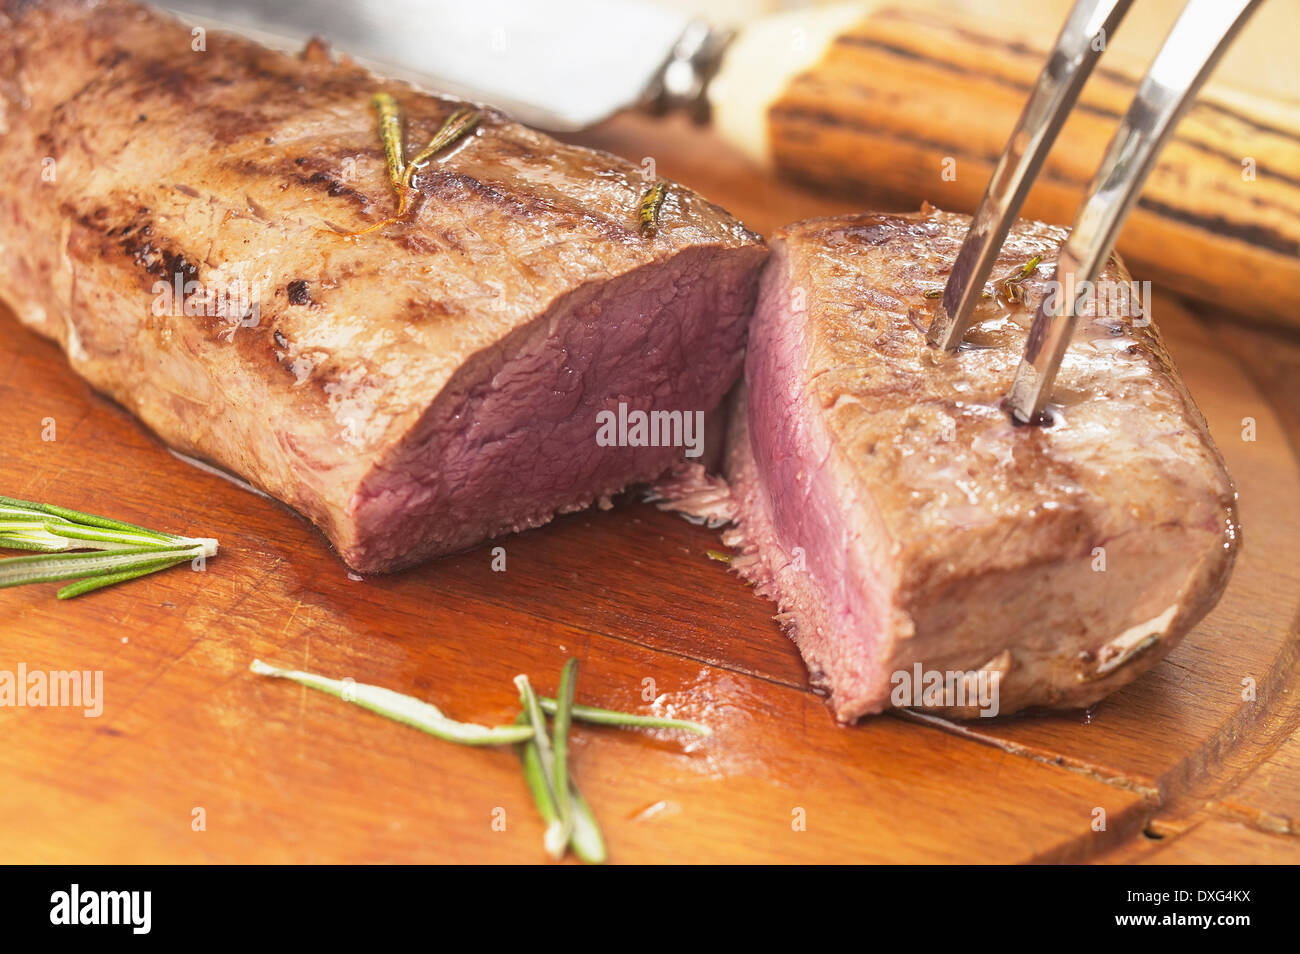 Roast Loin Of Venison Being Carved - Stock Image